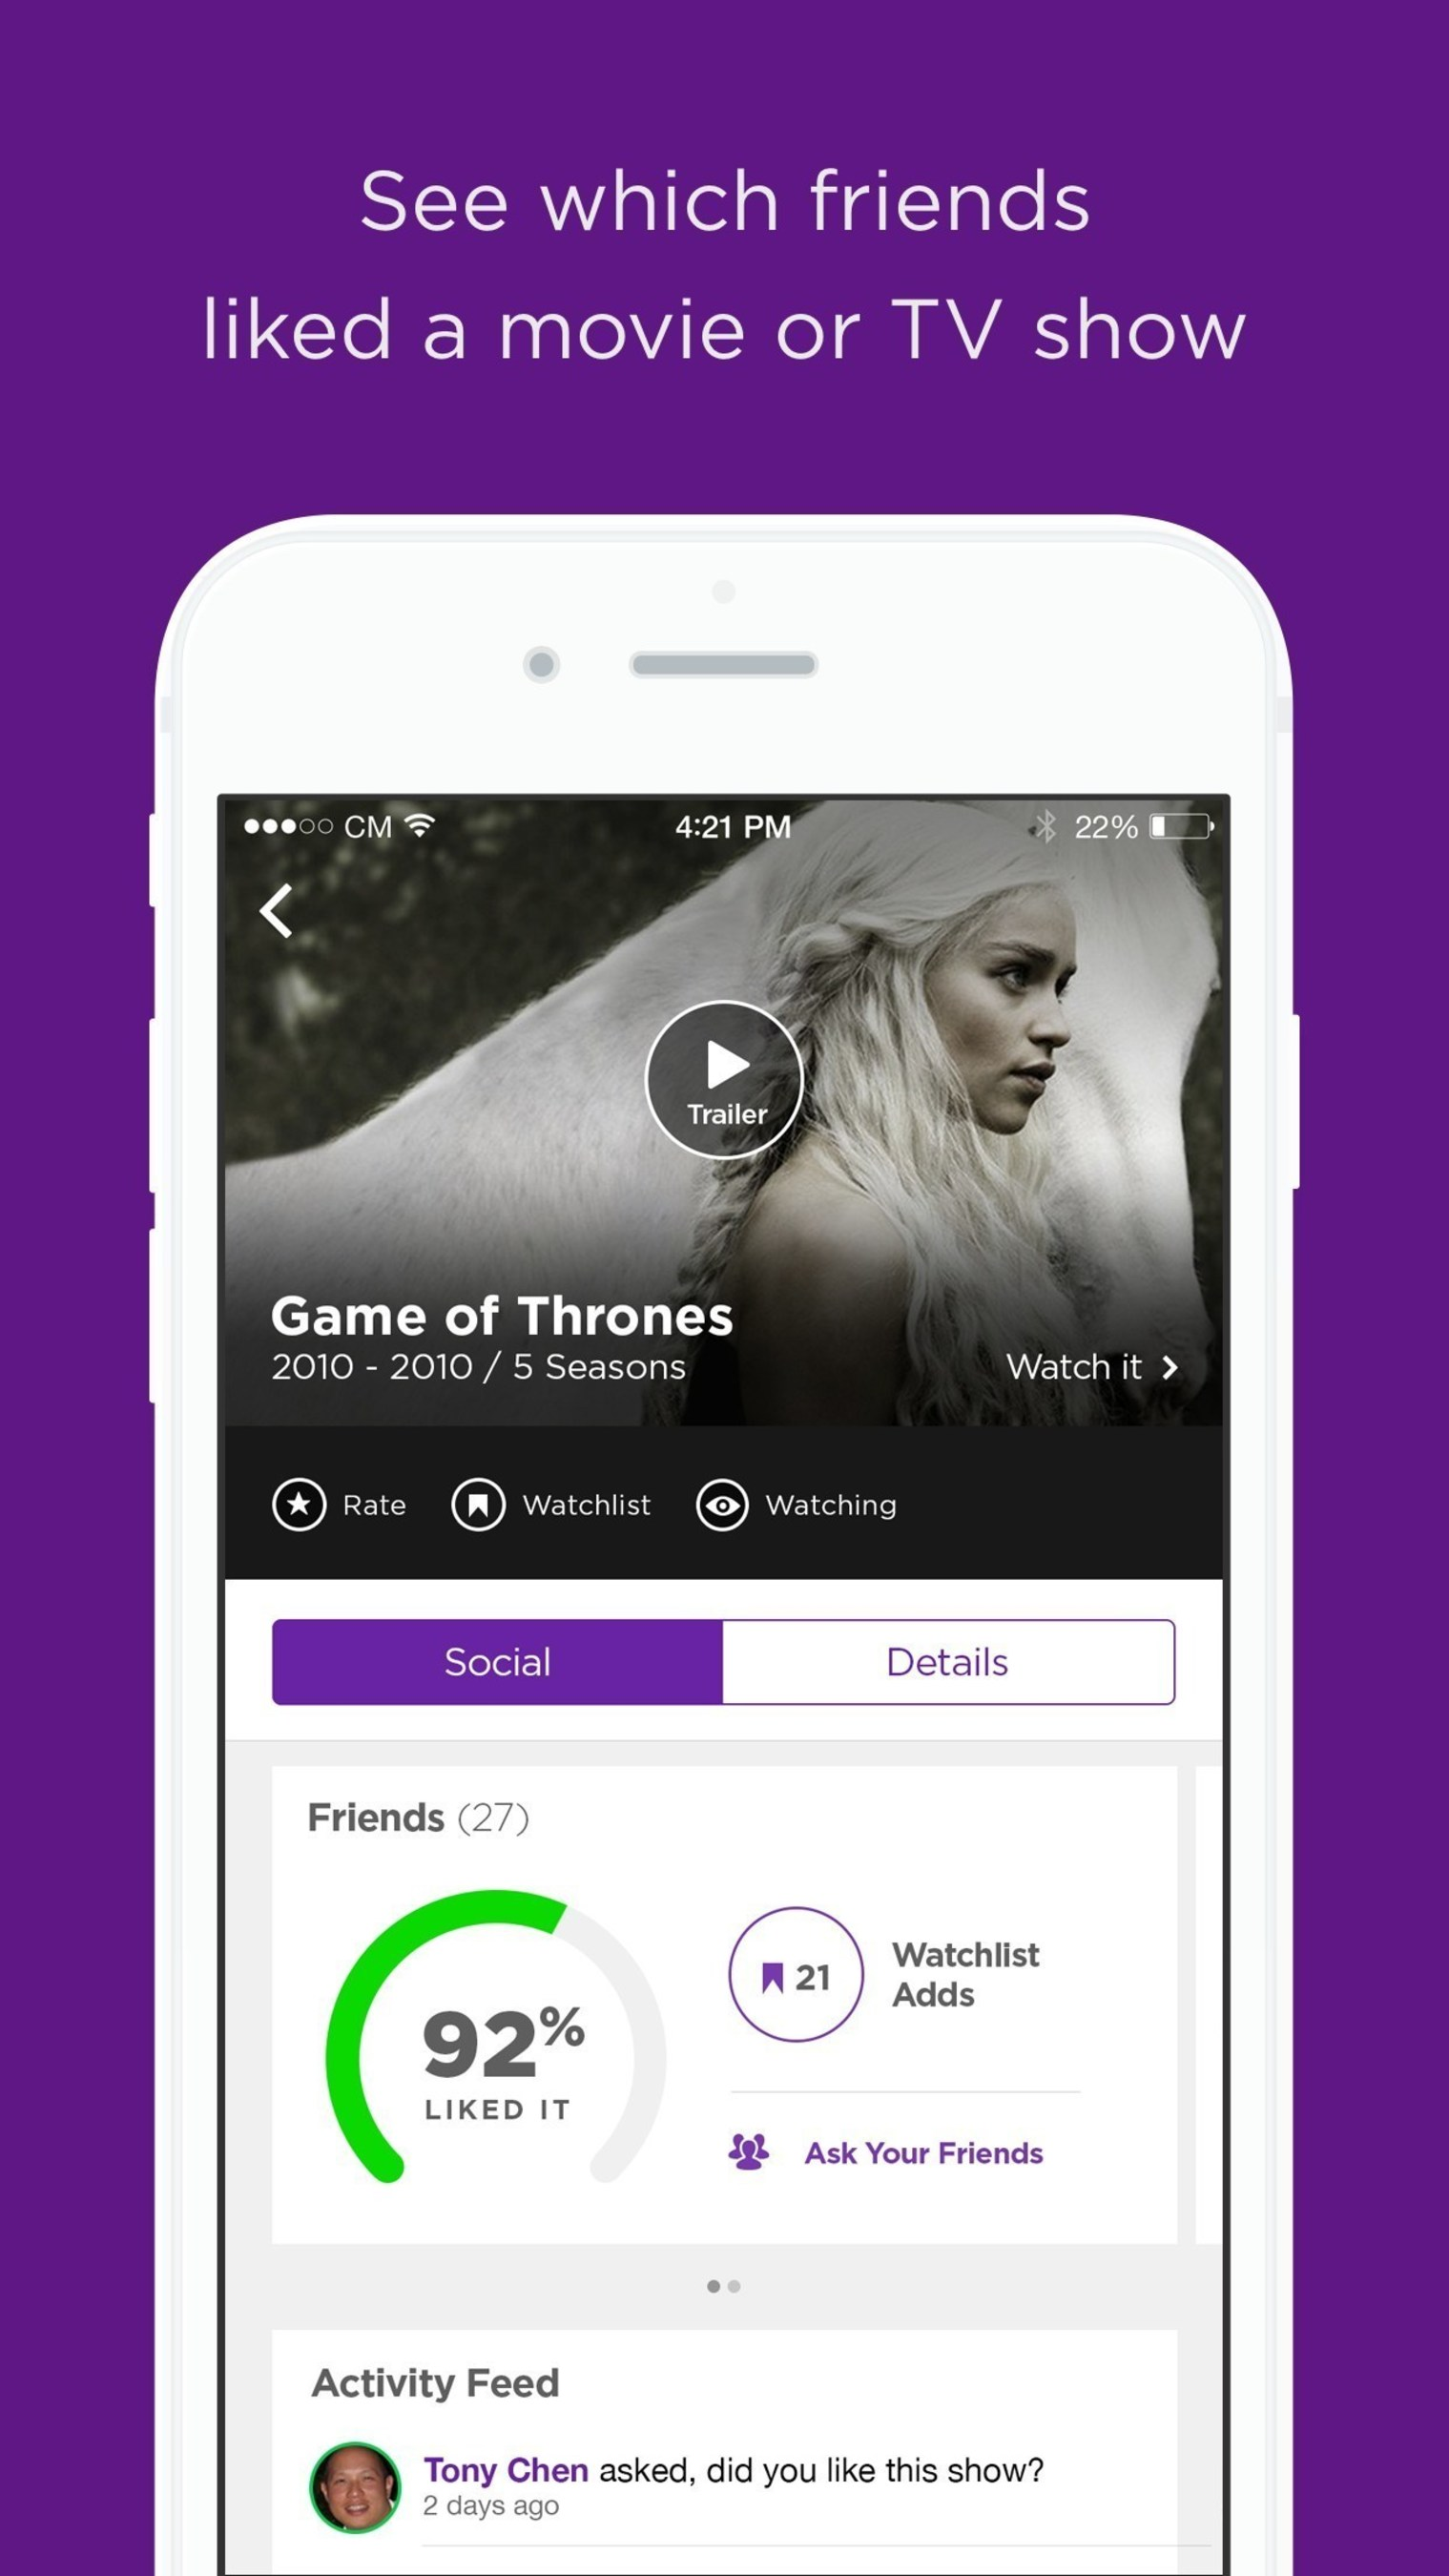 With Legit, users can rate, review and discuss movies with their friends, all in one app.